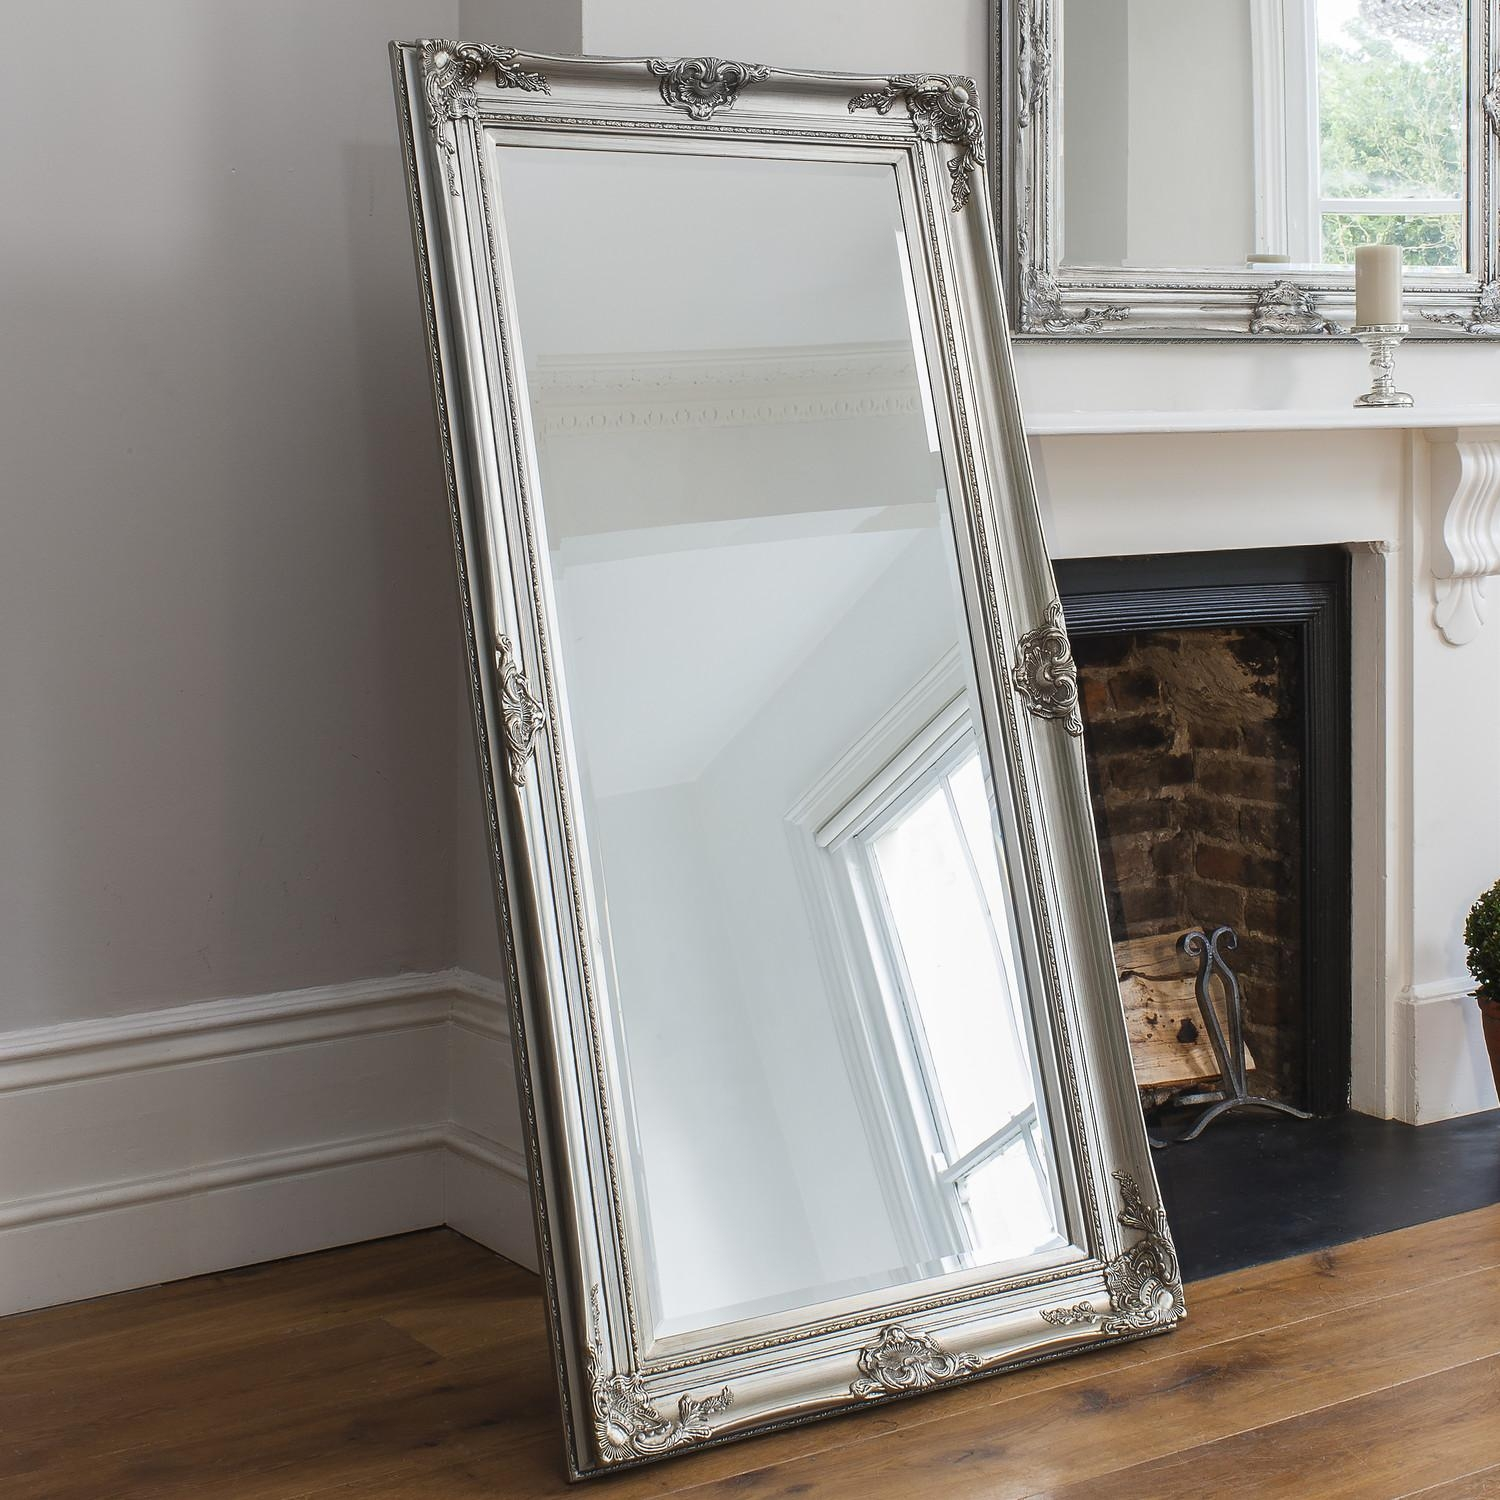 Furniture: Silver Leaner Mirror Plus Stool And Wooden Floor For With Regard To Huge Mirrors For Sale (Image 8 of 20)